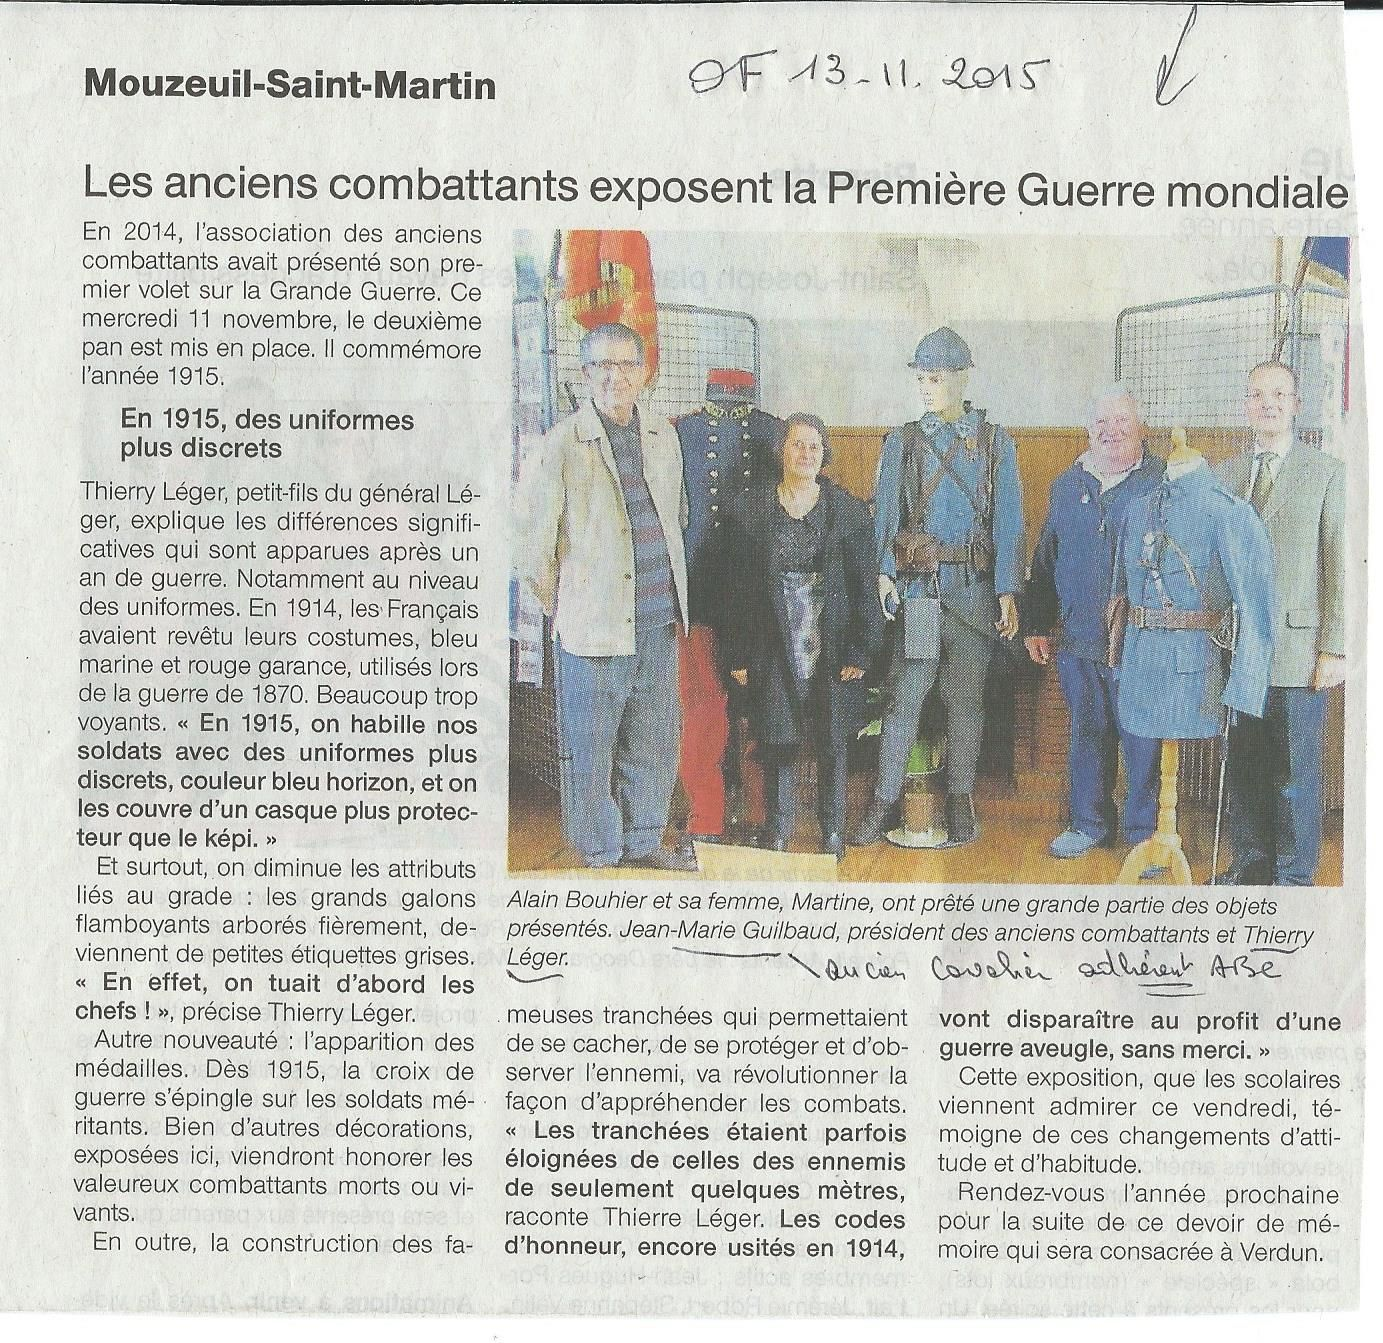 Expo à Mouzeuil St Martin Ouest France 12 11 2015